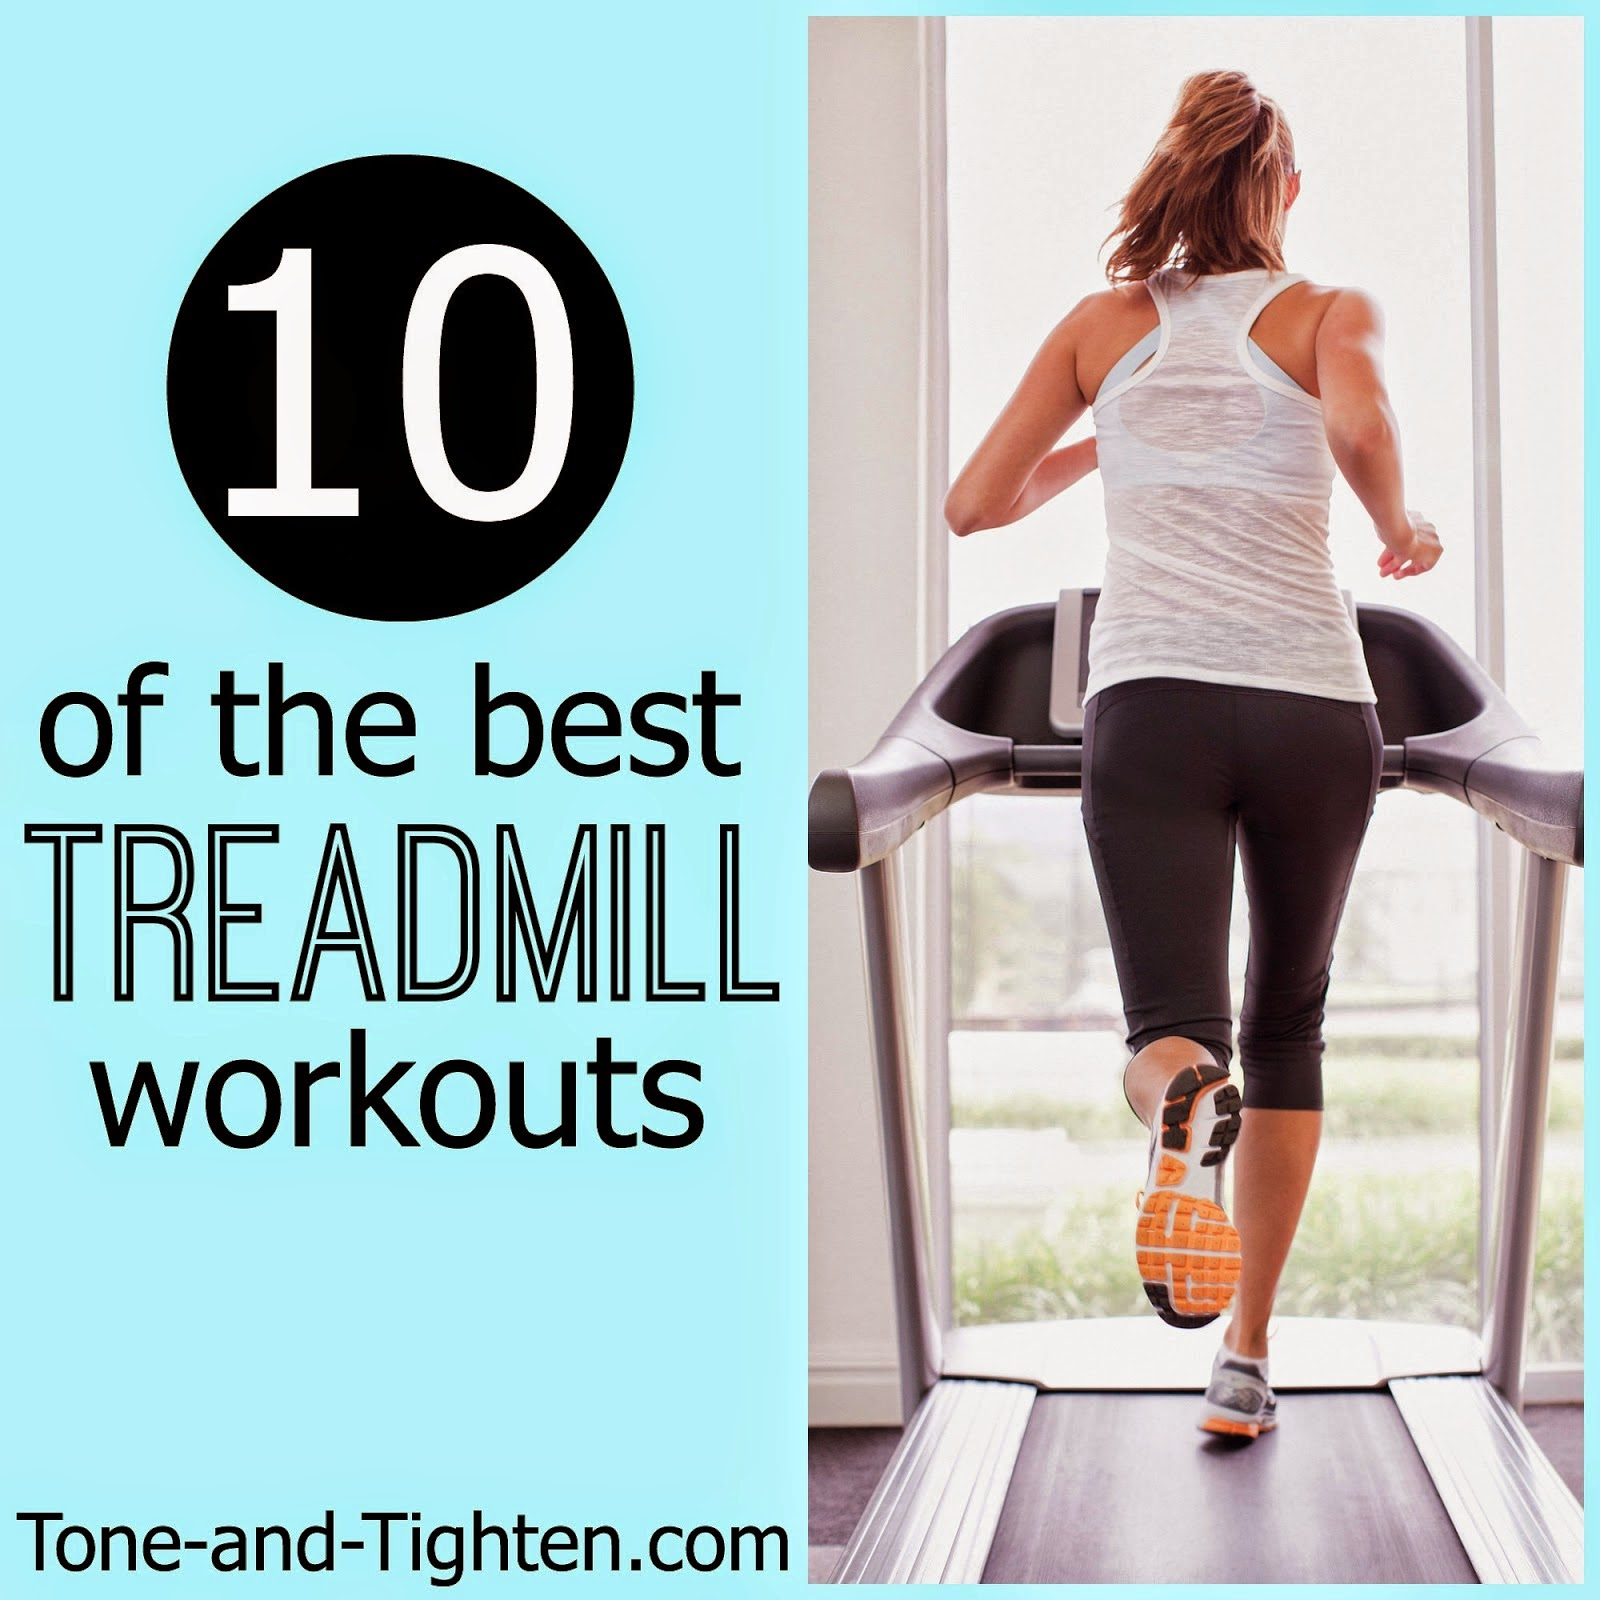 http://tone-and-tighten.com/2014/03/10-of-the-best-treadmill-workouts.html